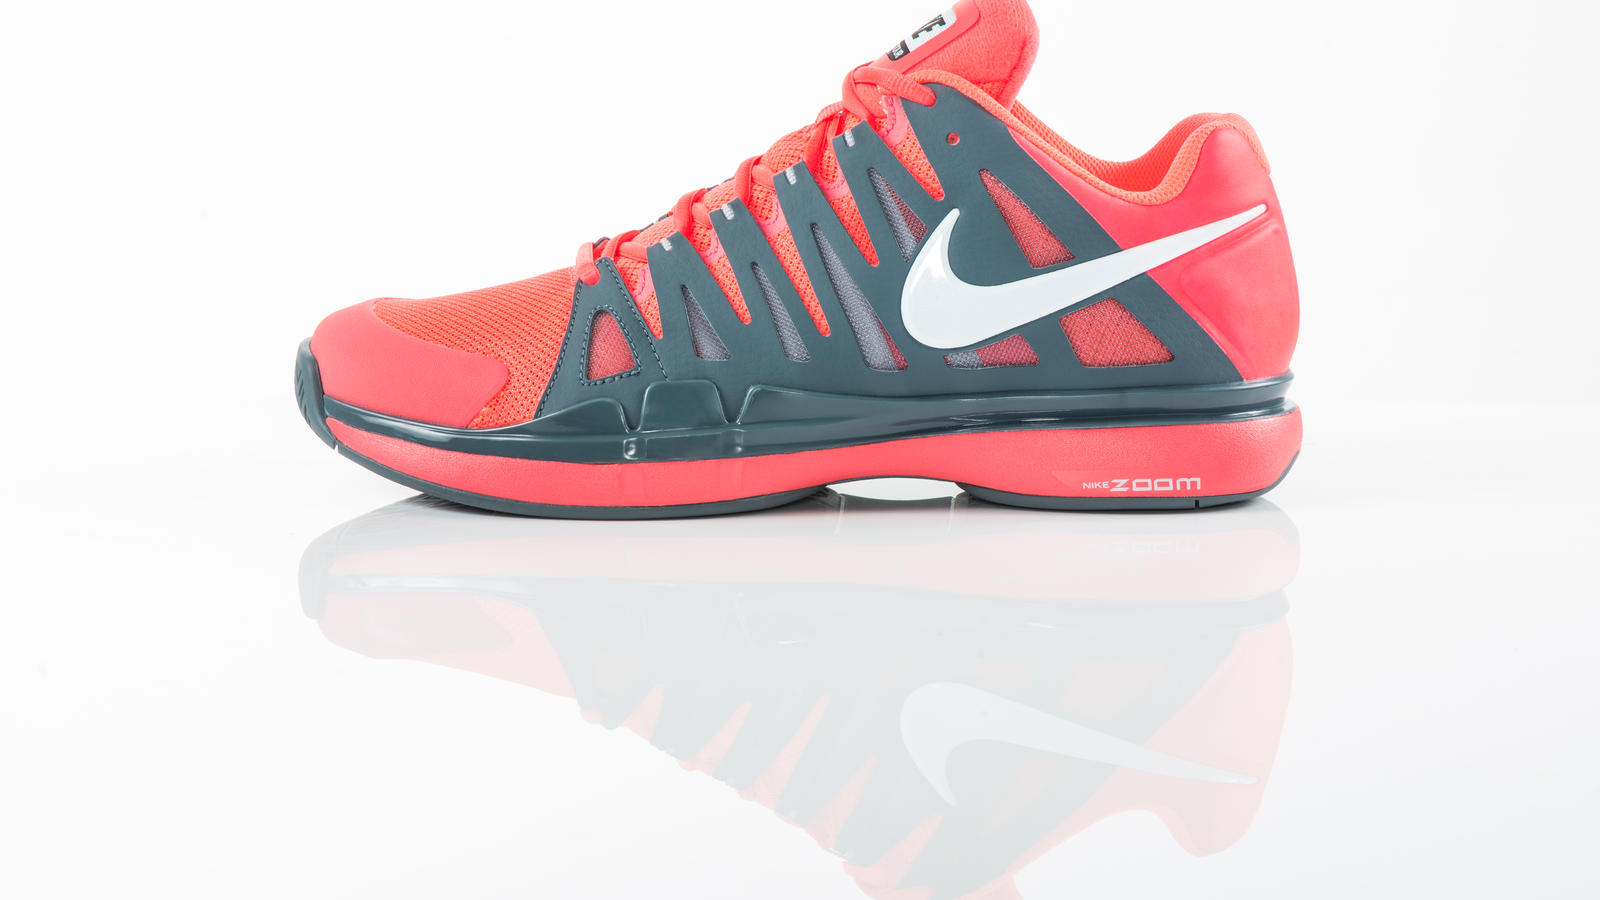 Nike Tennis Zoom Vapor 9 Tour